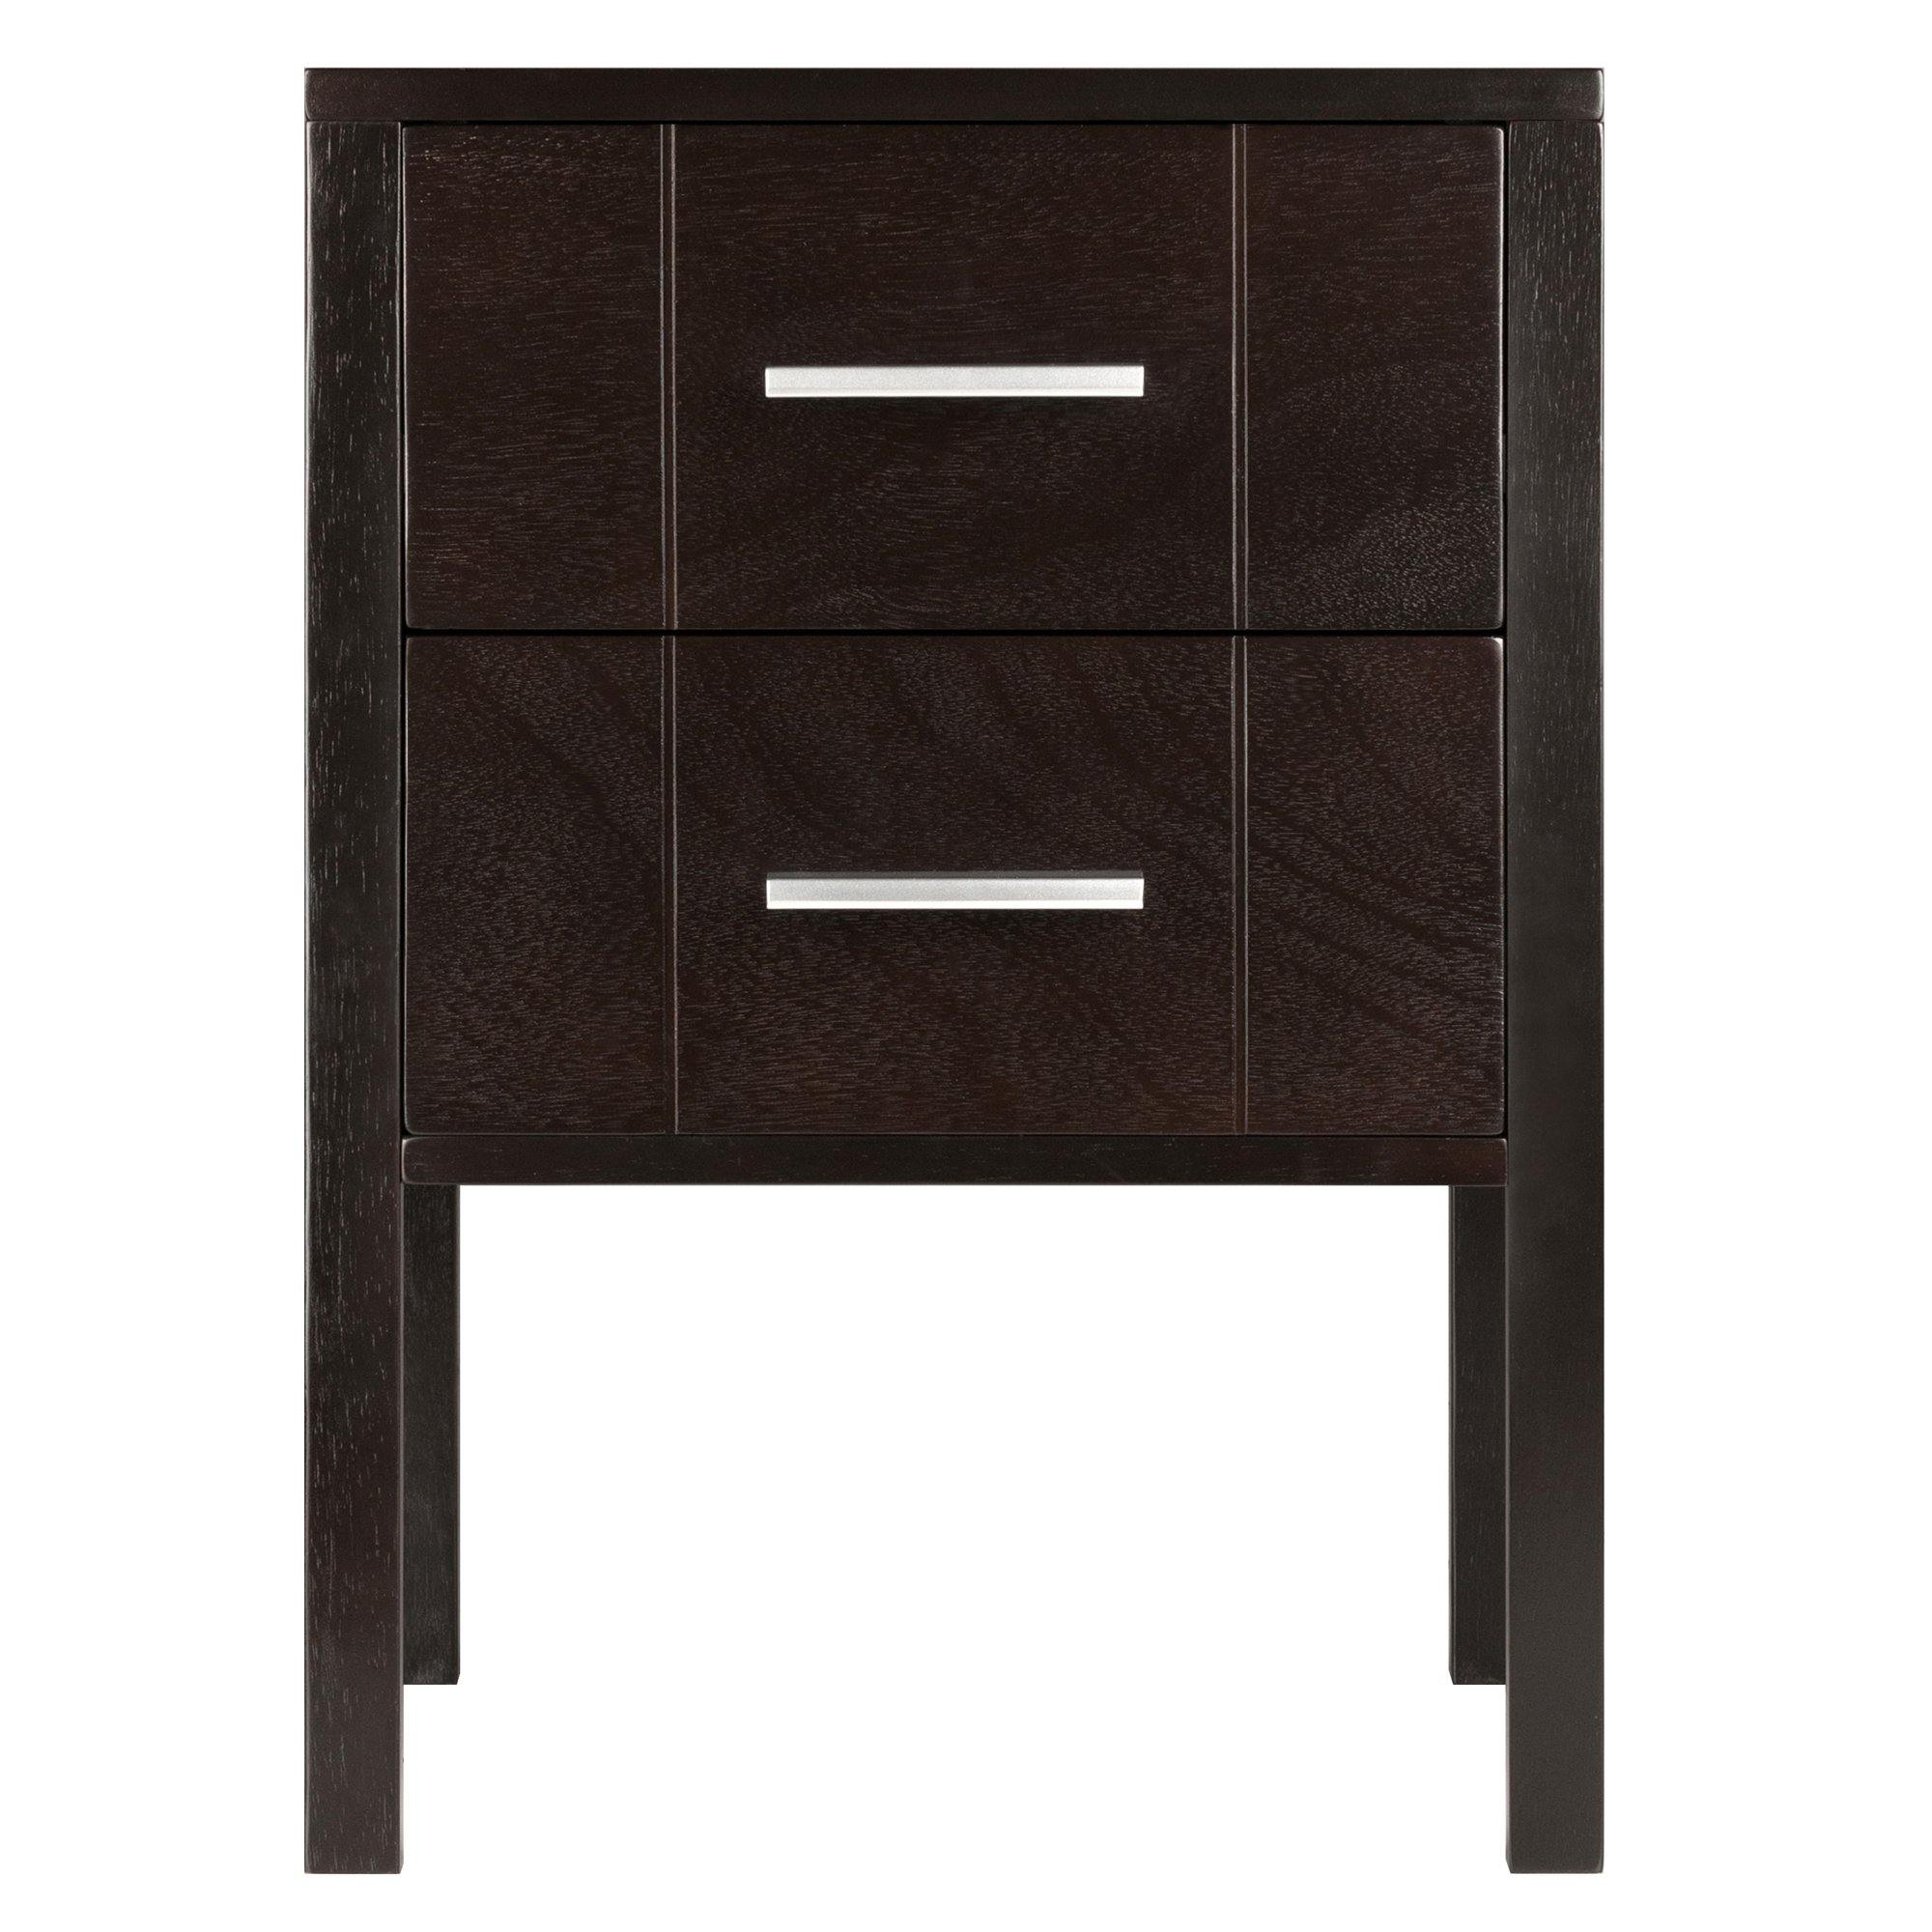 Brielle Accent Table, Nightstand, Coffee - My USA Furniture